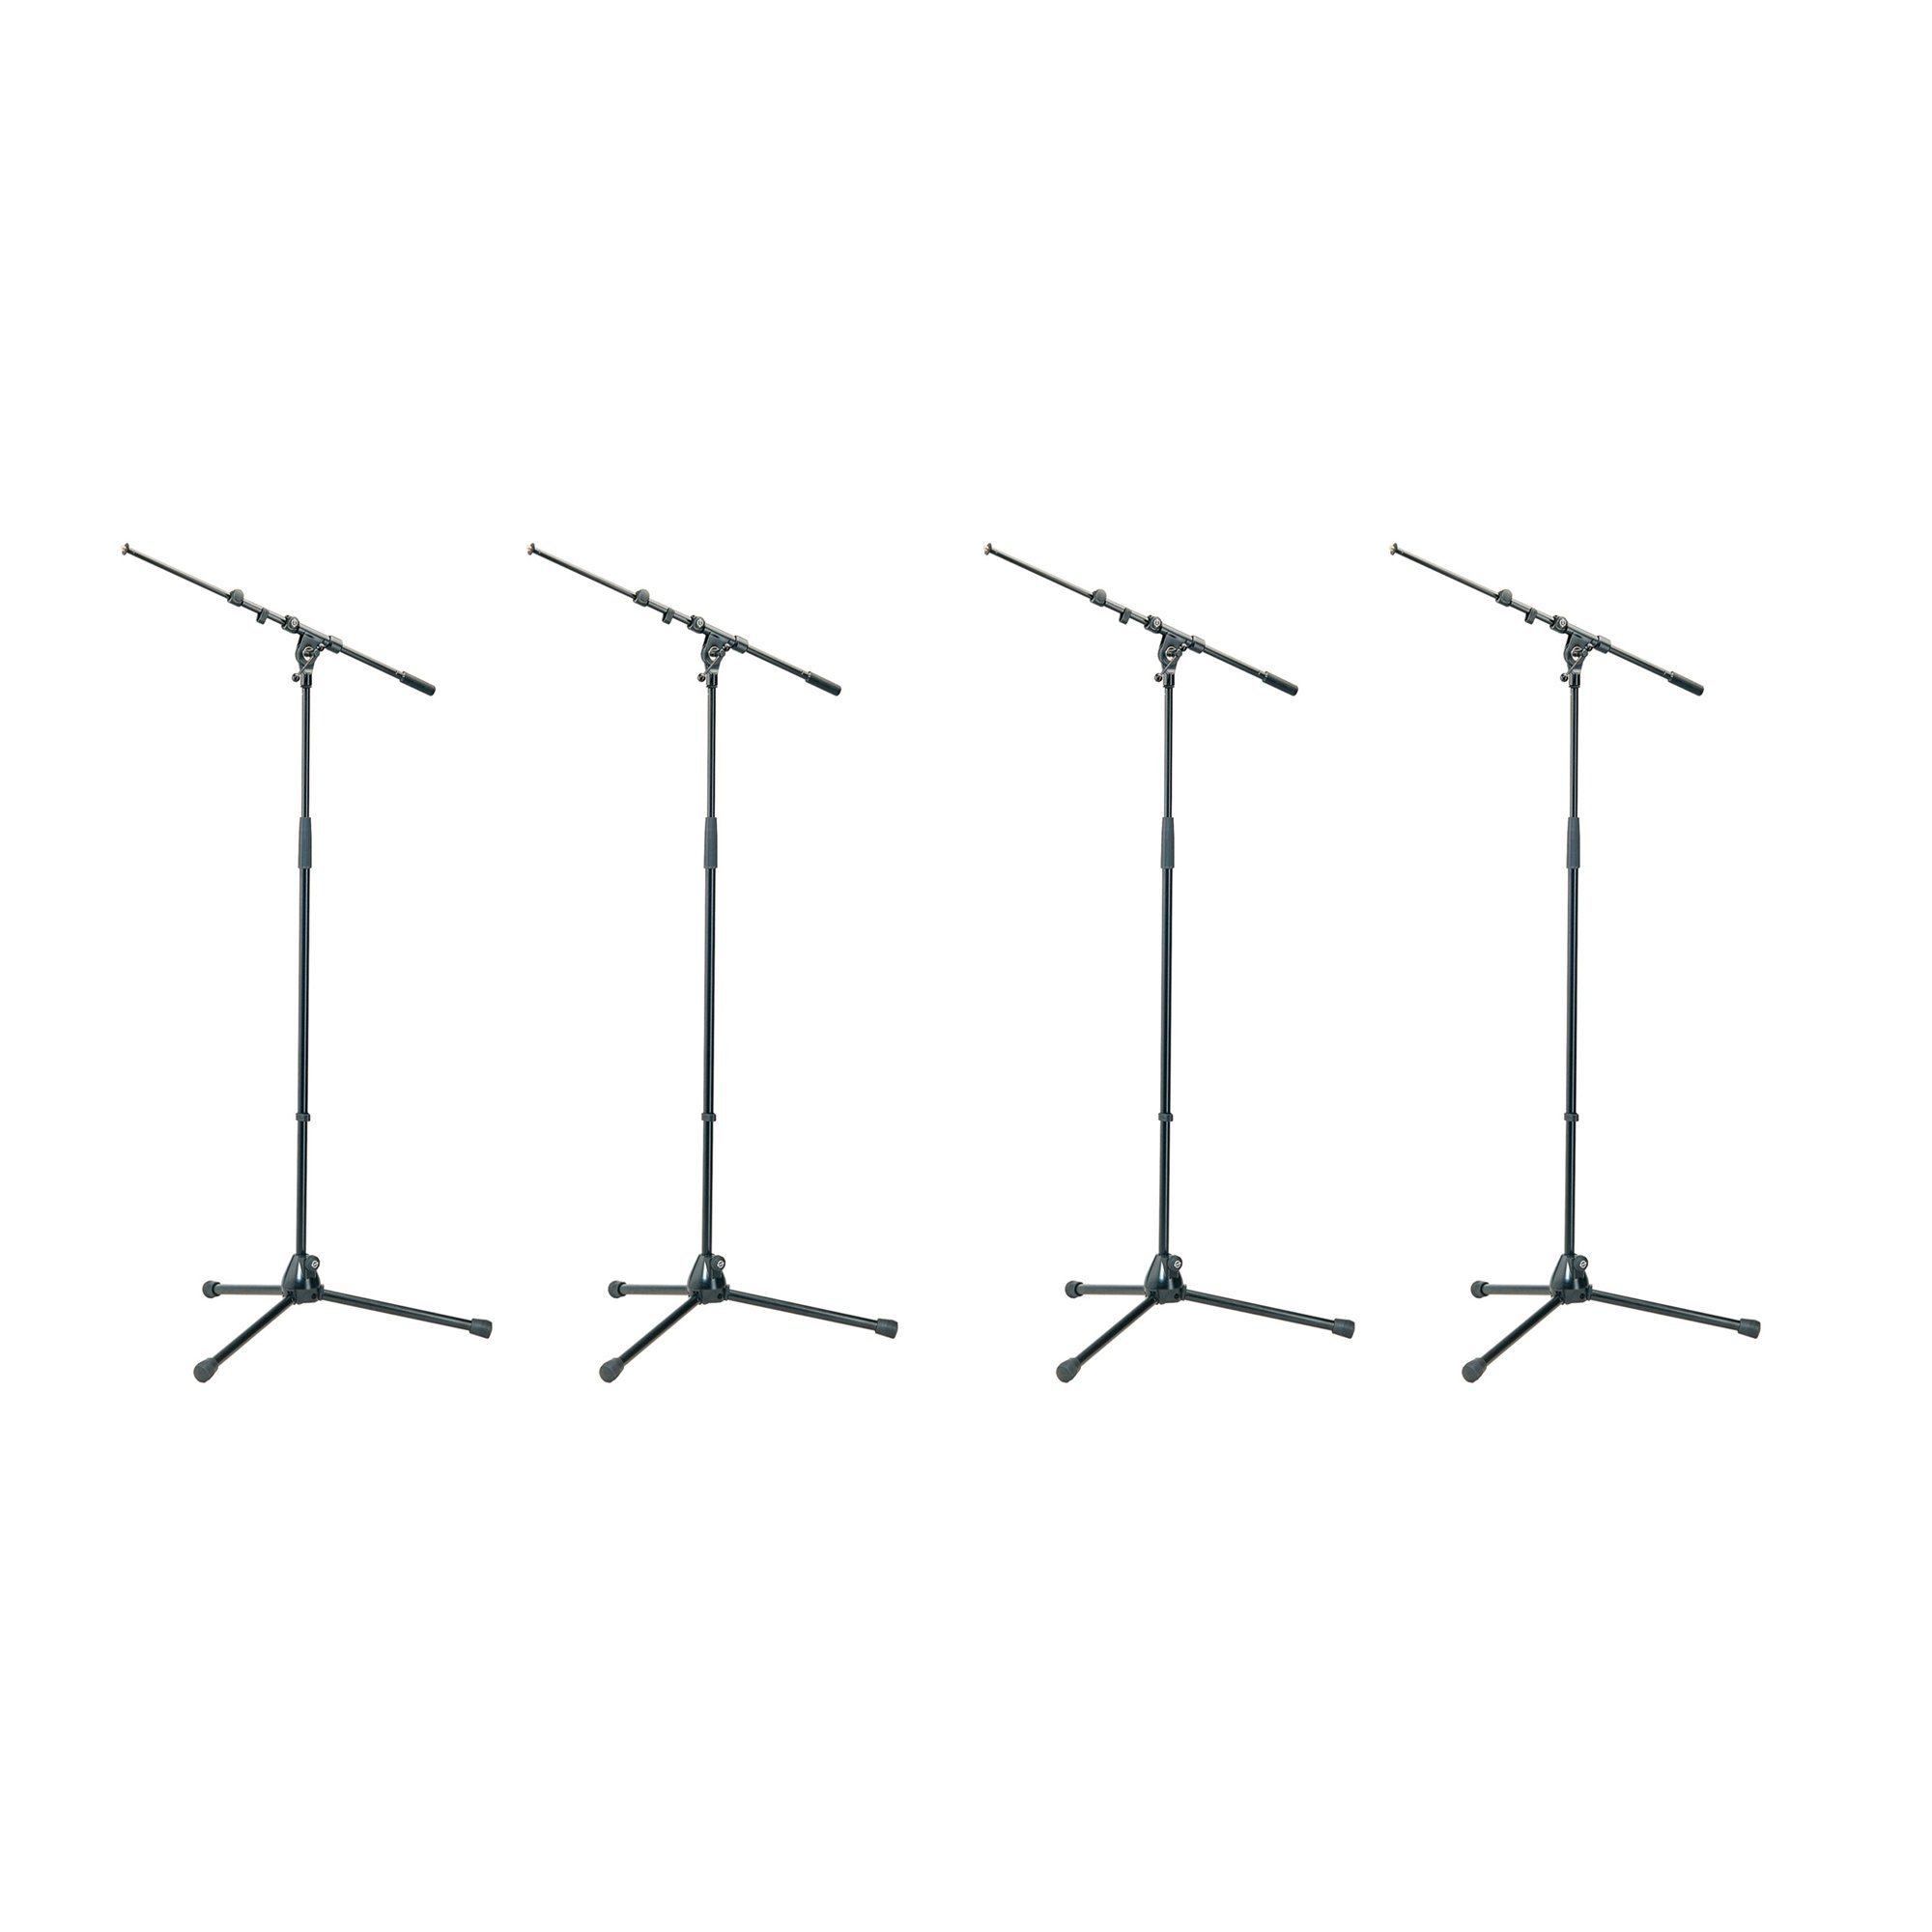 K&M Tour Grade Tripod Mic Stands with Adjustable Telescoping 18-30 inch Boom. Height 35 - 63 inches Qty 4 by K&M